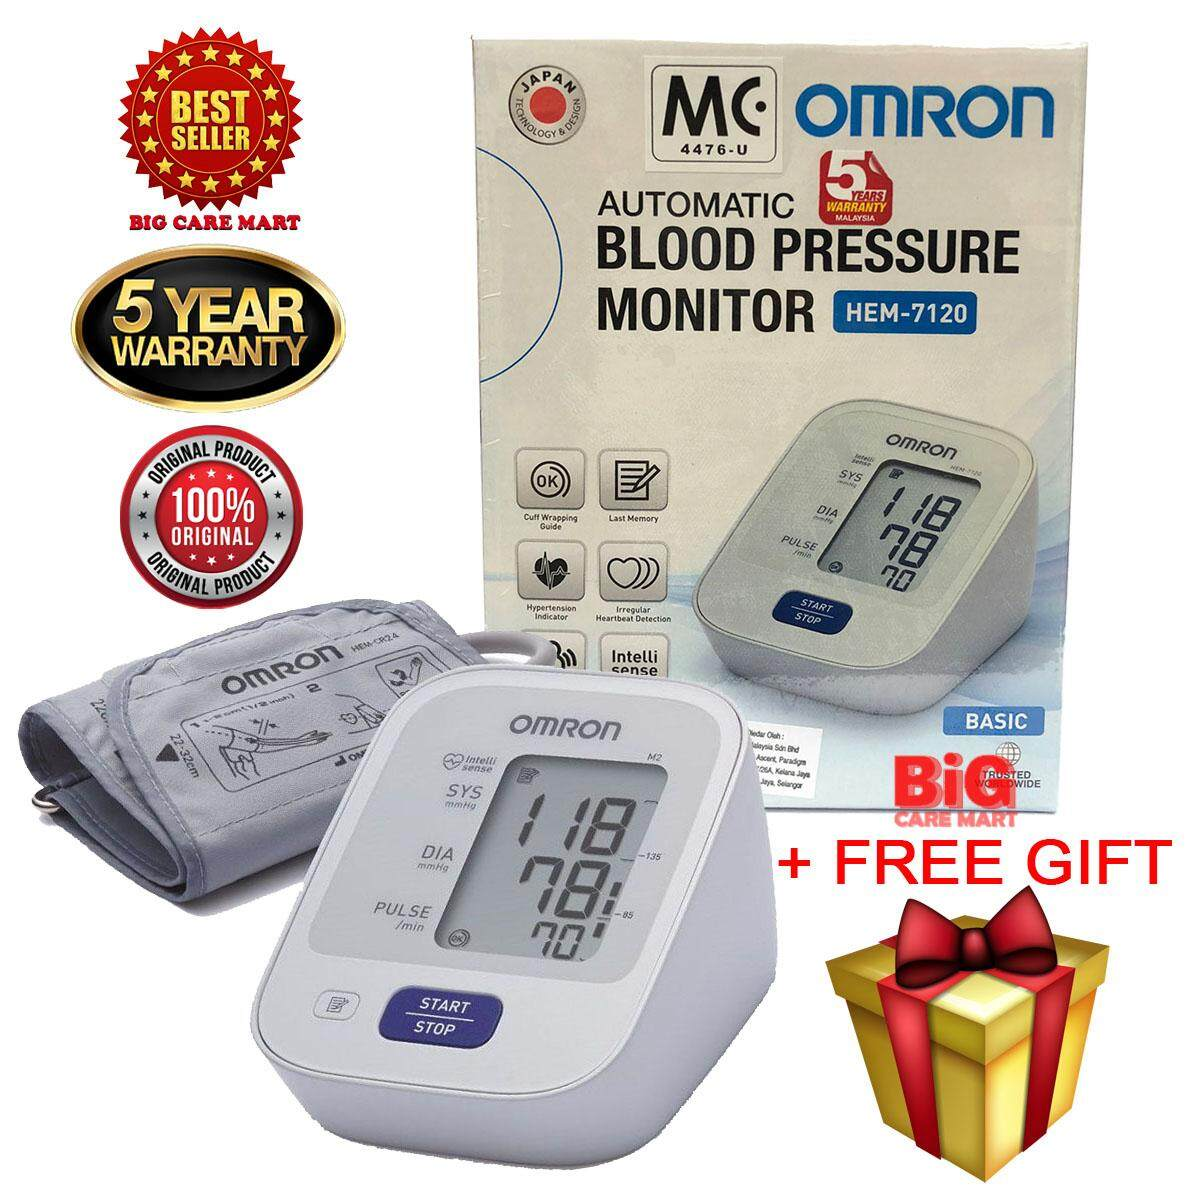 Omron HEM 7120 Automatic Blood Pressure Monitor [5 Years Warranty] + FREE GIFT